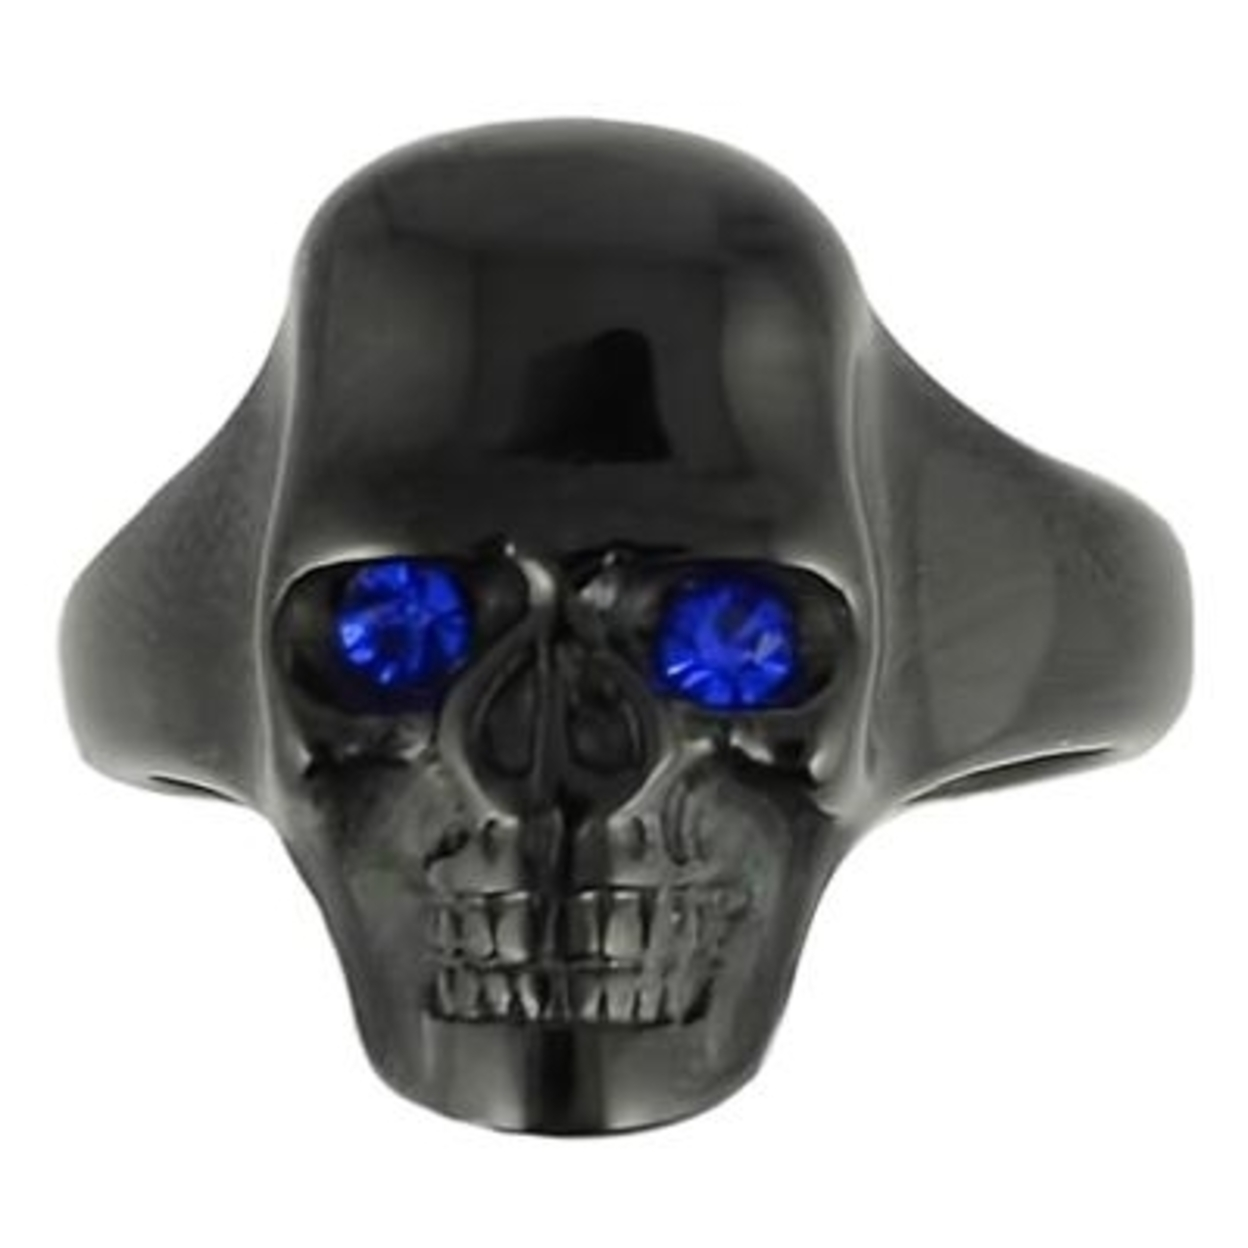 Sk1856 Gents Black Skull With Imitation Sapphire Eyes Ring Stainless Steel Motorcycle Biker Jewelry 9